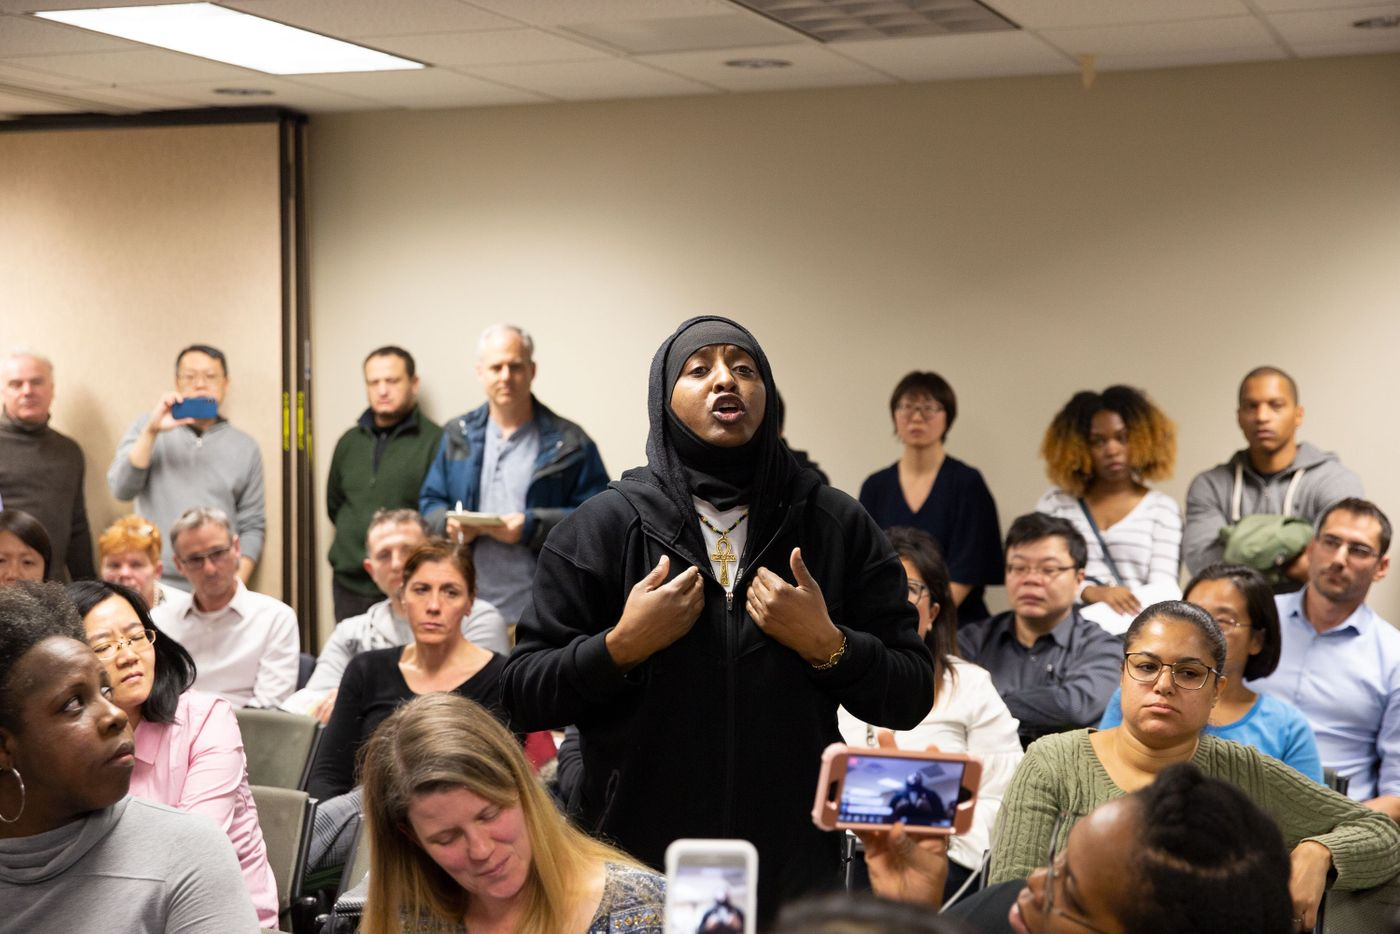 Parent Lorraine Reid argued for more resources for schools serving mostly children of color at a public meeting to discuss plans to integrate District 28 middle schools.